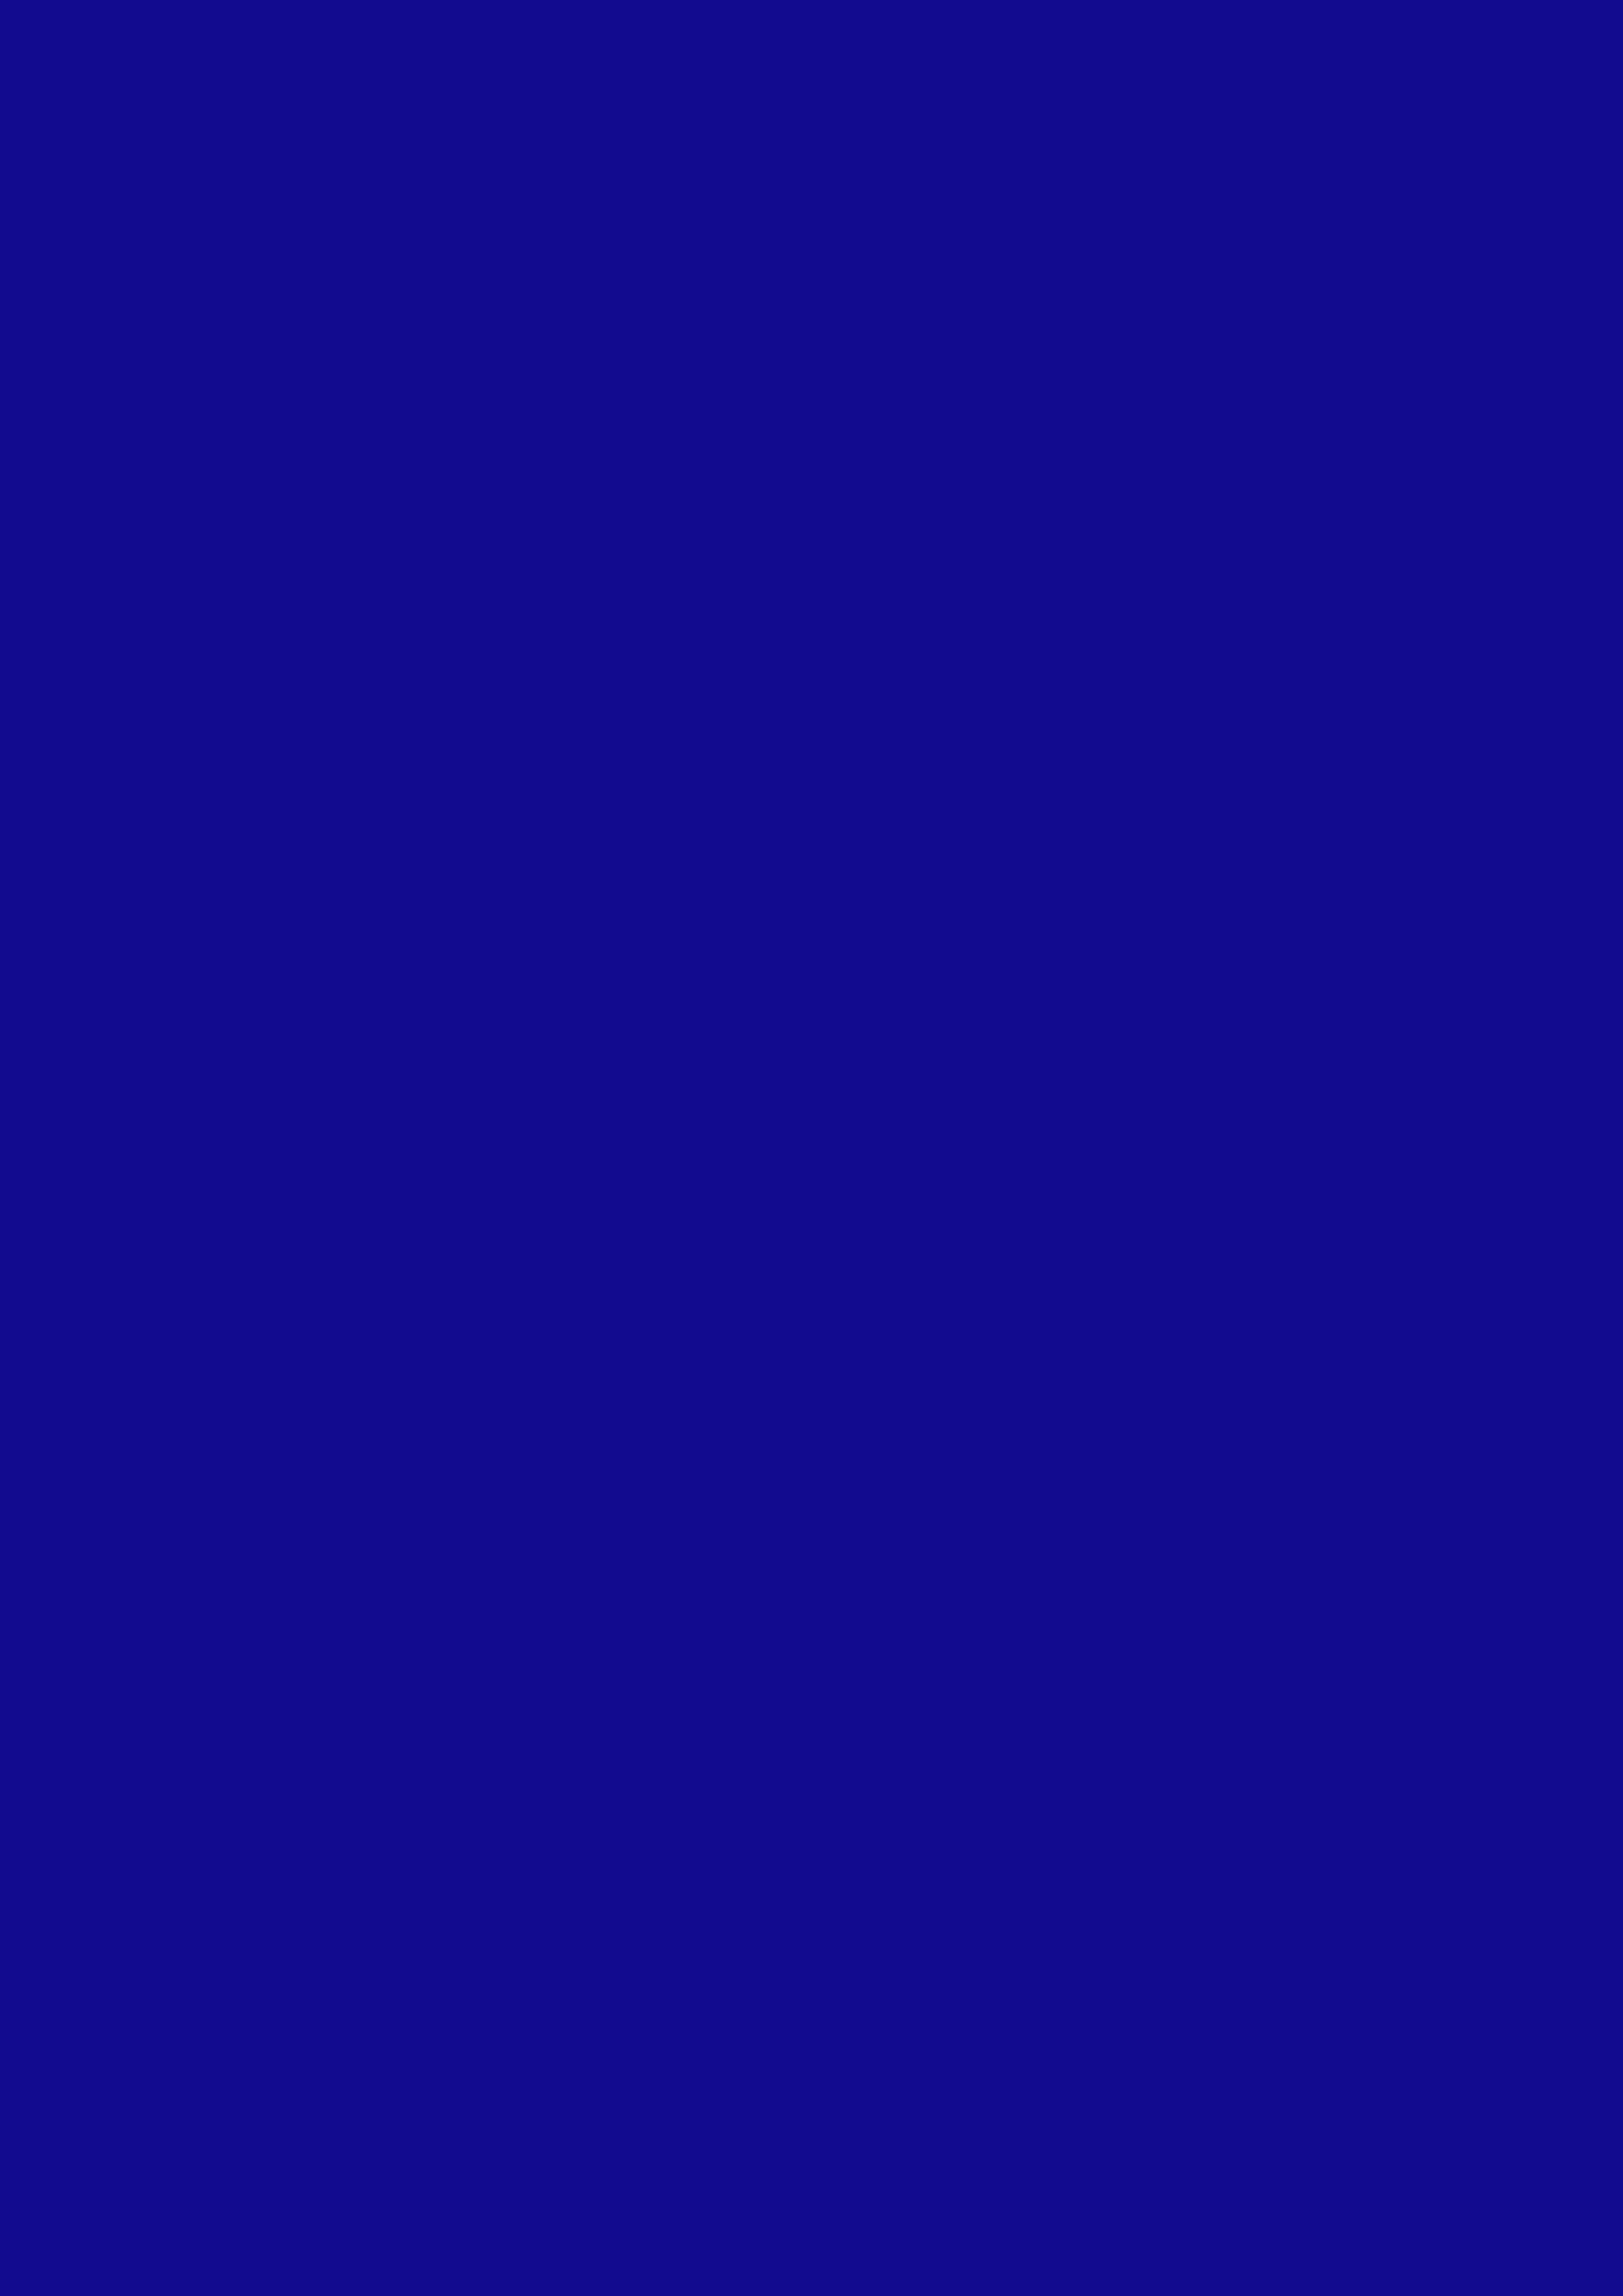 2480x3508 Ultramarine Solid Color Background 2480x3508